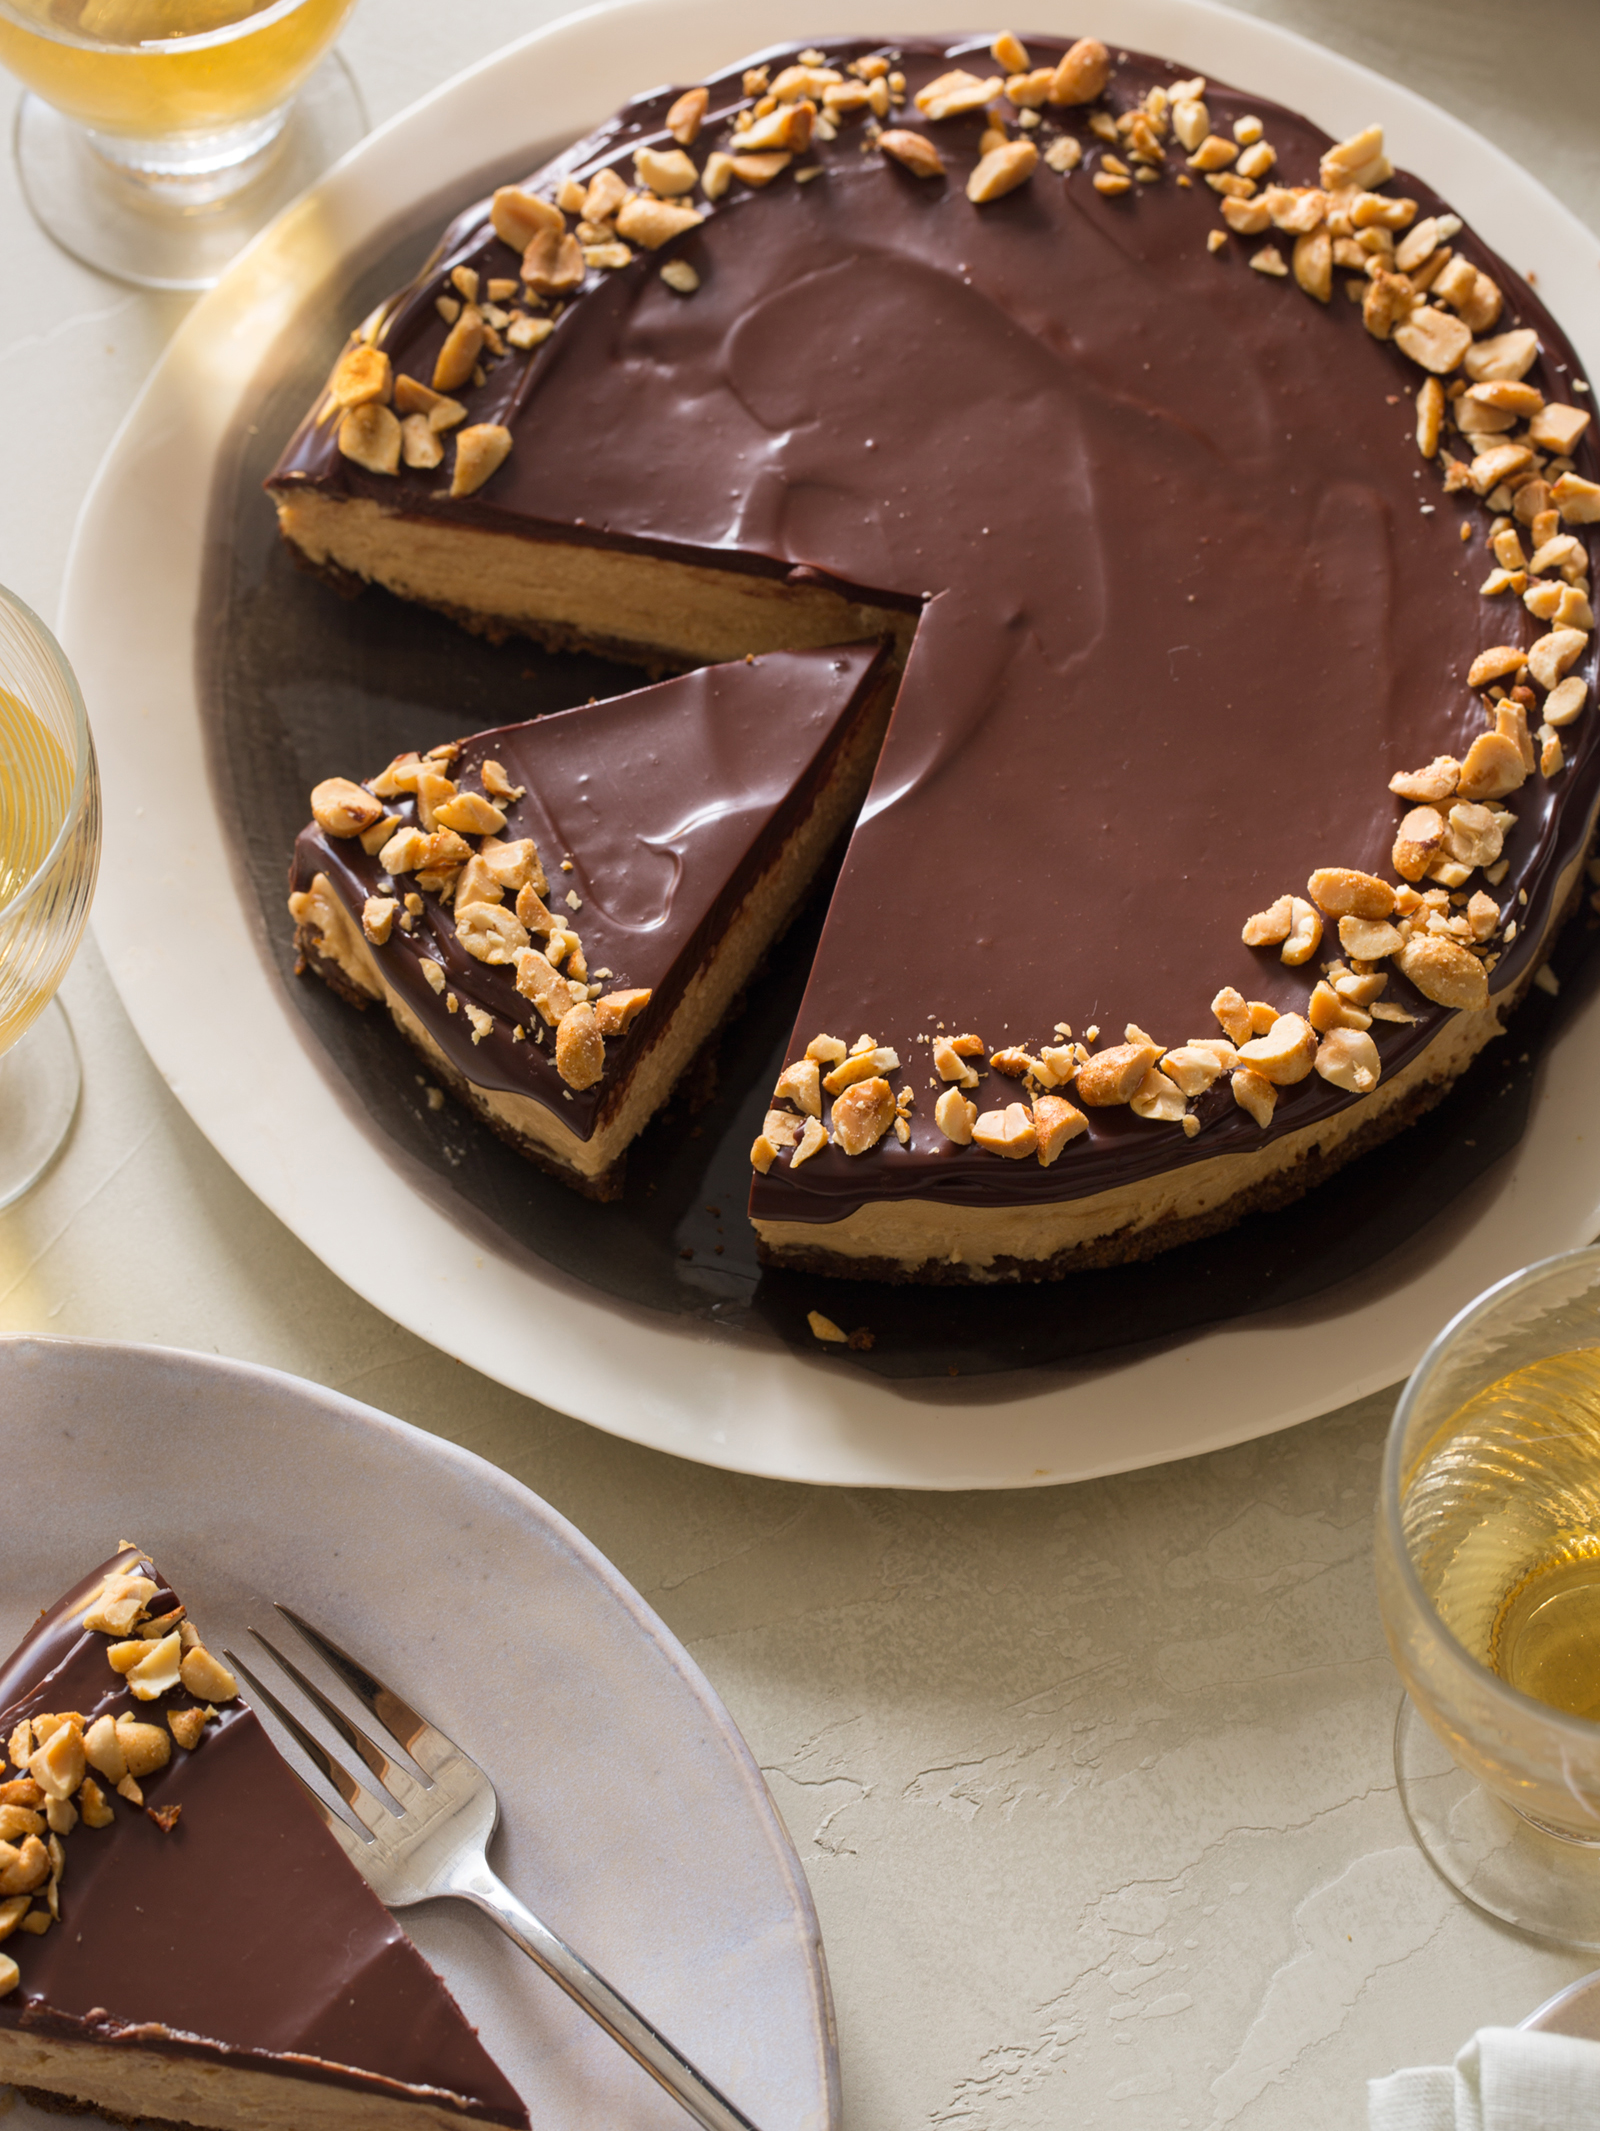 No Bake Peanut Butter Cheesecake with Dark Chocolate Ganache